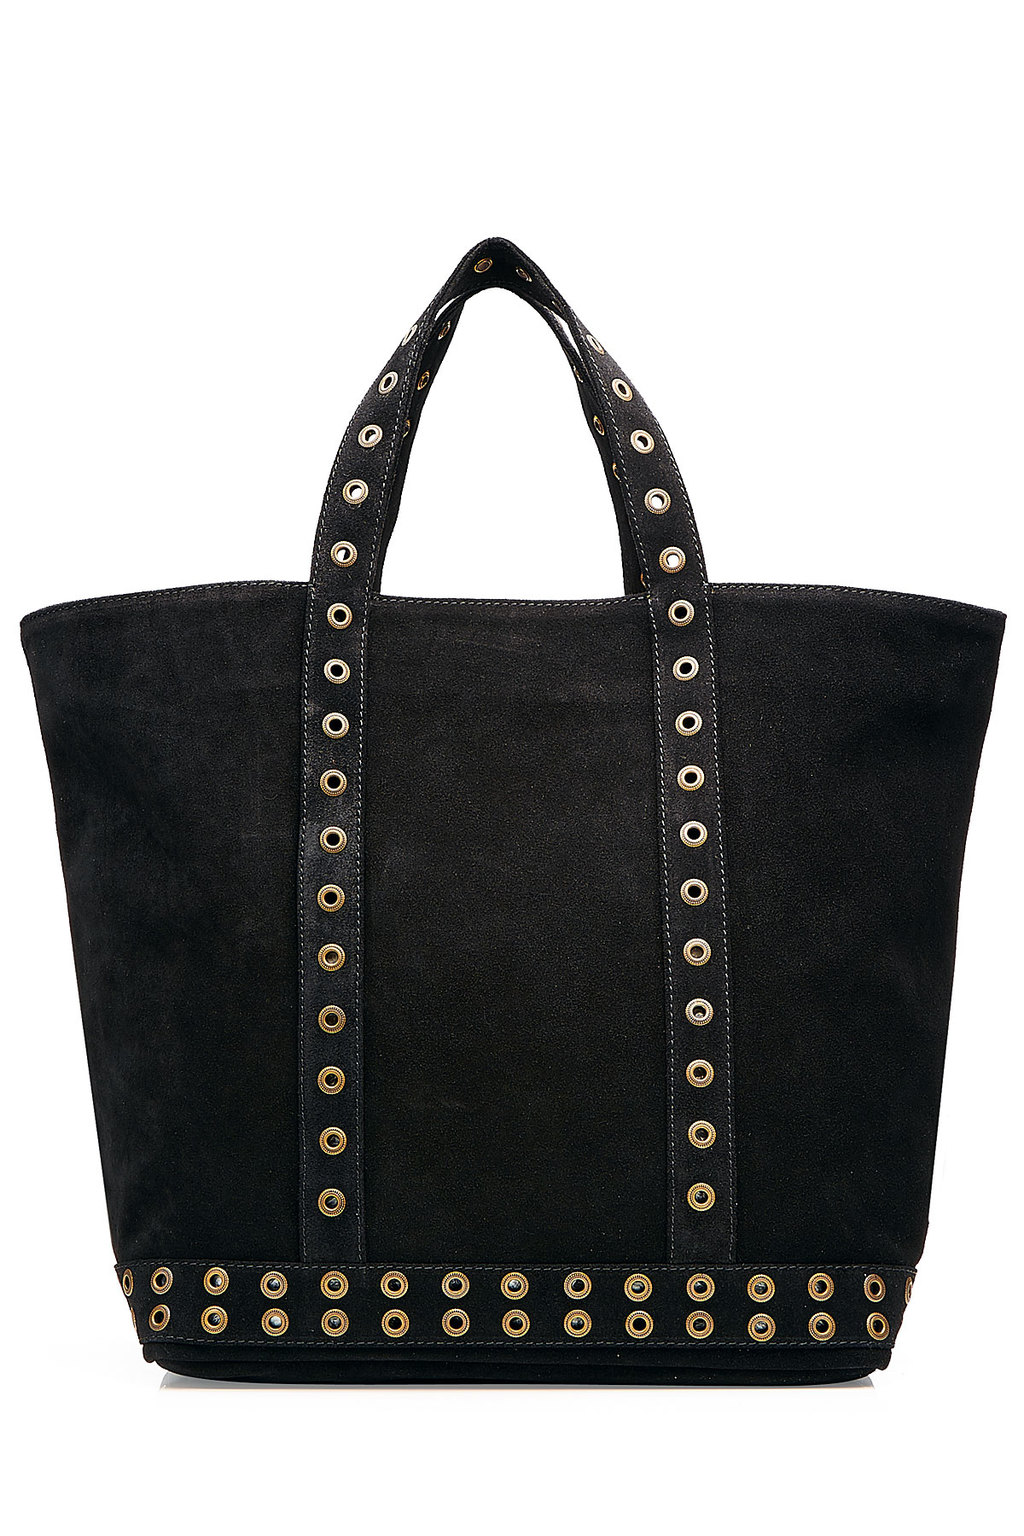 Suede Tote With Eyelet Trim Black - secondary colour: gold; predominant colour: black; occasions: casual, creative work; type of pattern: standard; style: tote; length: handle; size: oversized; material: leather; pattern: plain; finish: plain; embellishment: chain/metal; season: s/s 2016